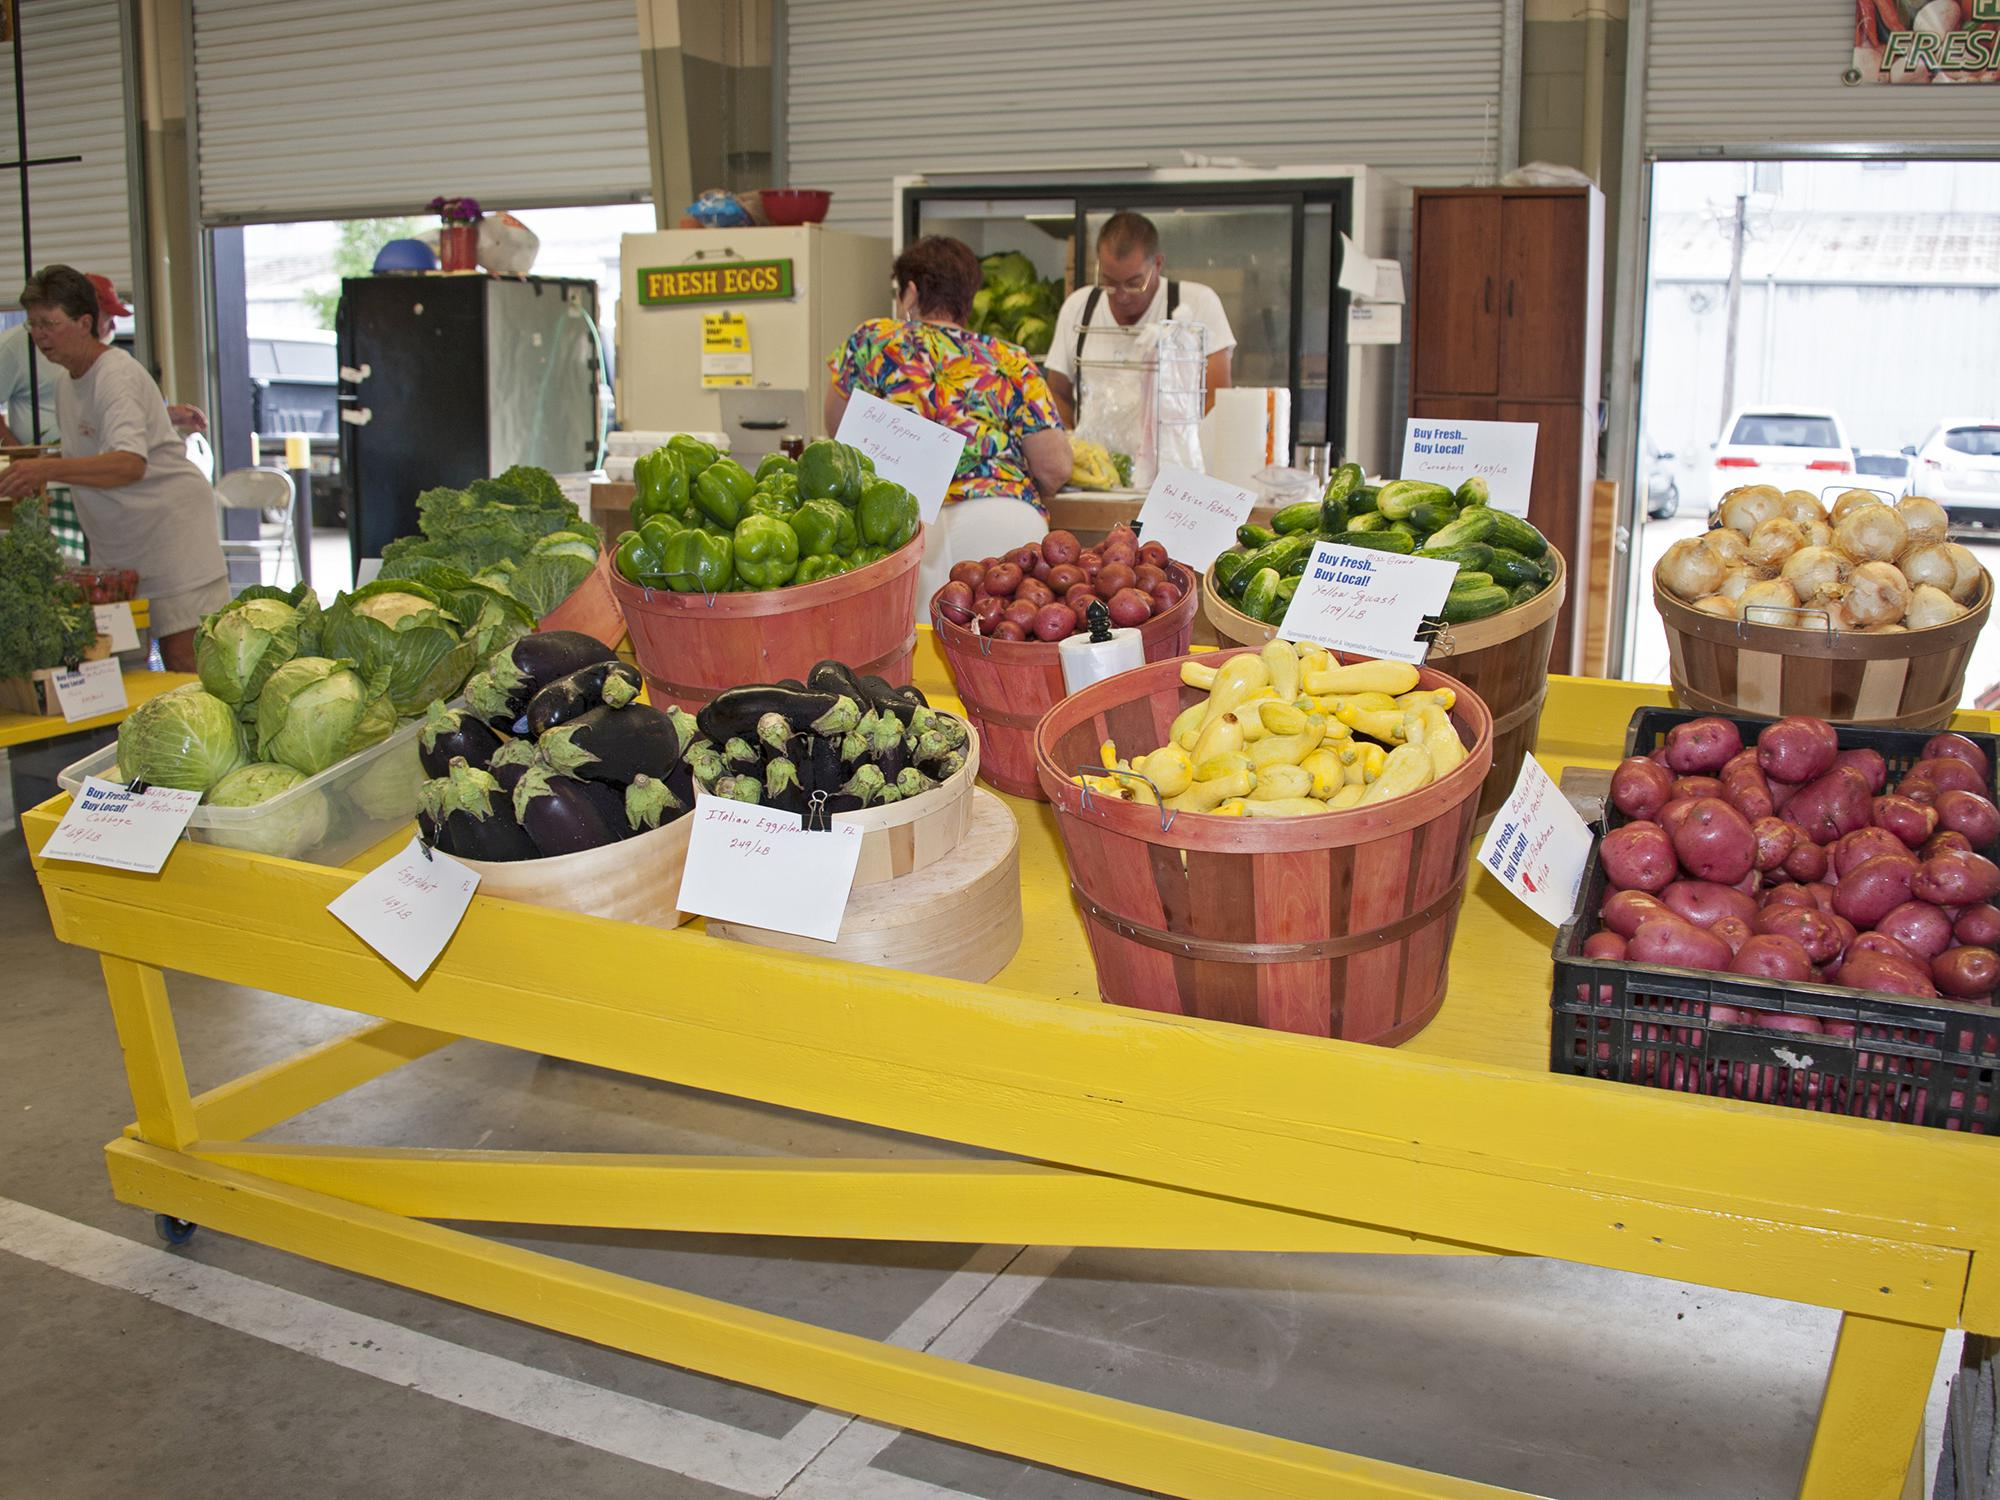 Mississippi is rich with local produce, as seen in this file photo from the Jackson Farmers Market. Supporting local farmers markets adds money to the economy, benefits the environment and contributes to healthy, tasty meals. (MSU Extension Service file photo)